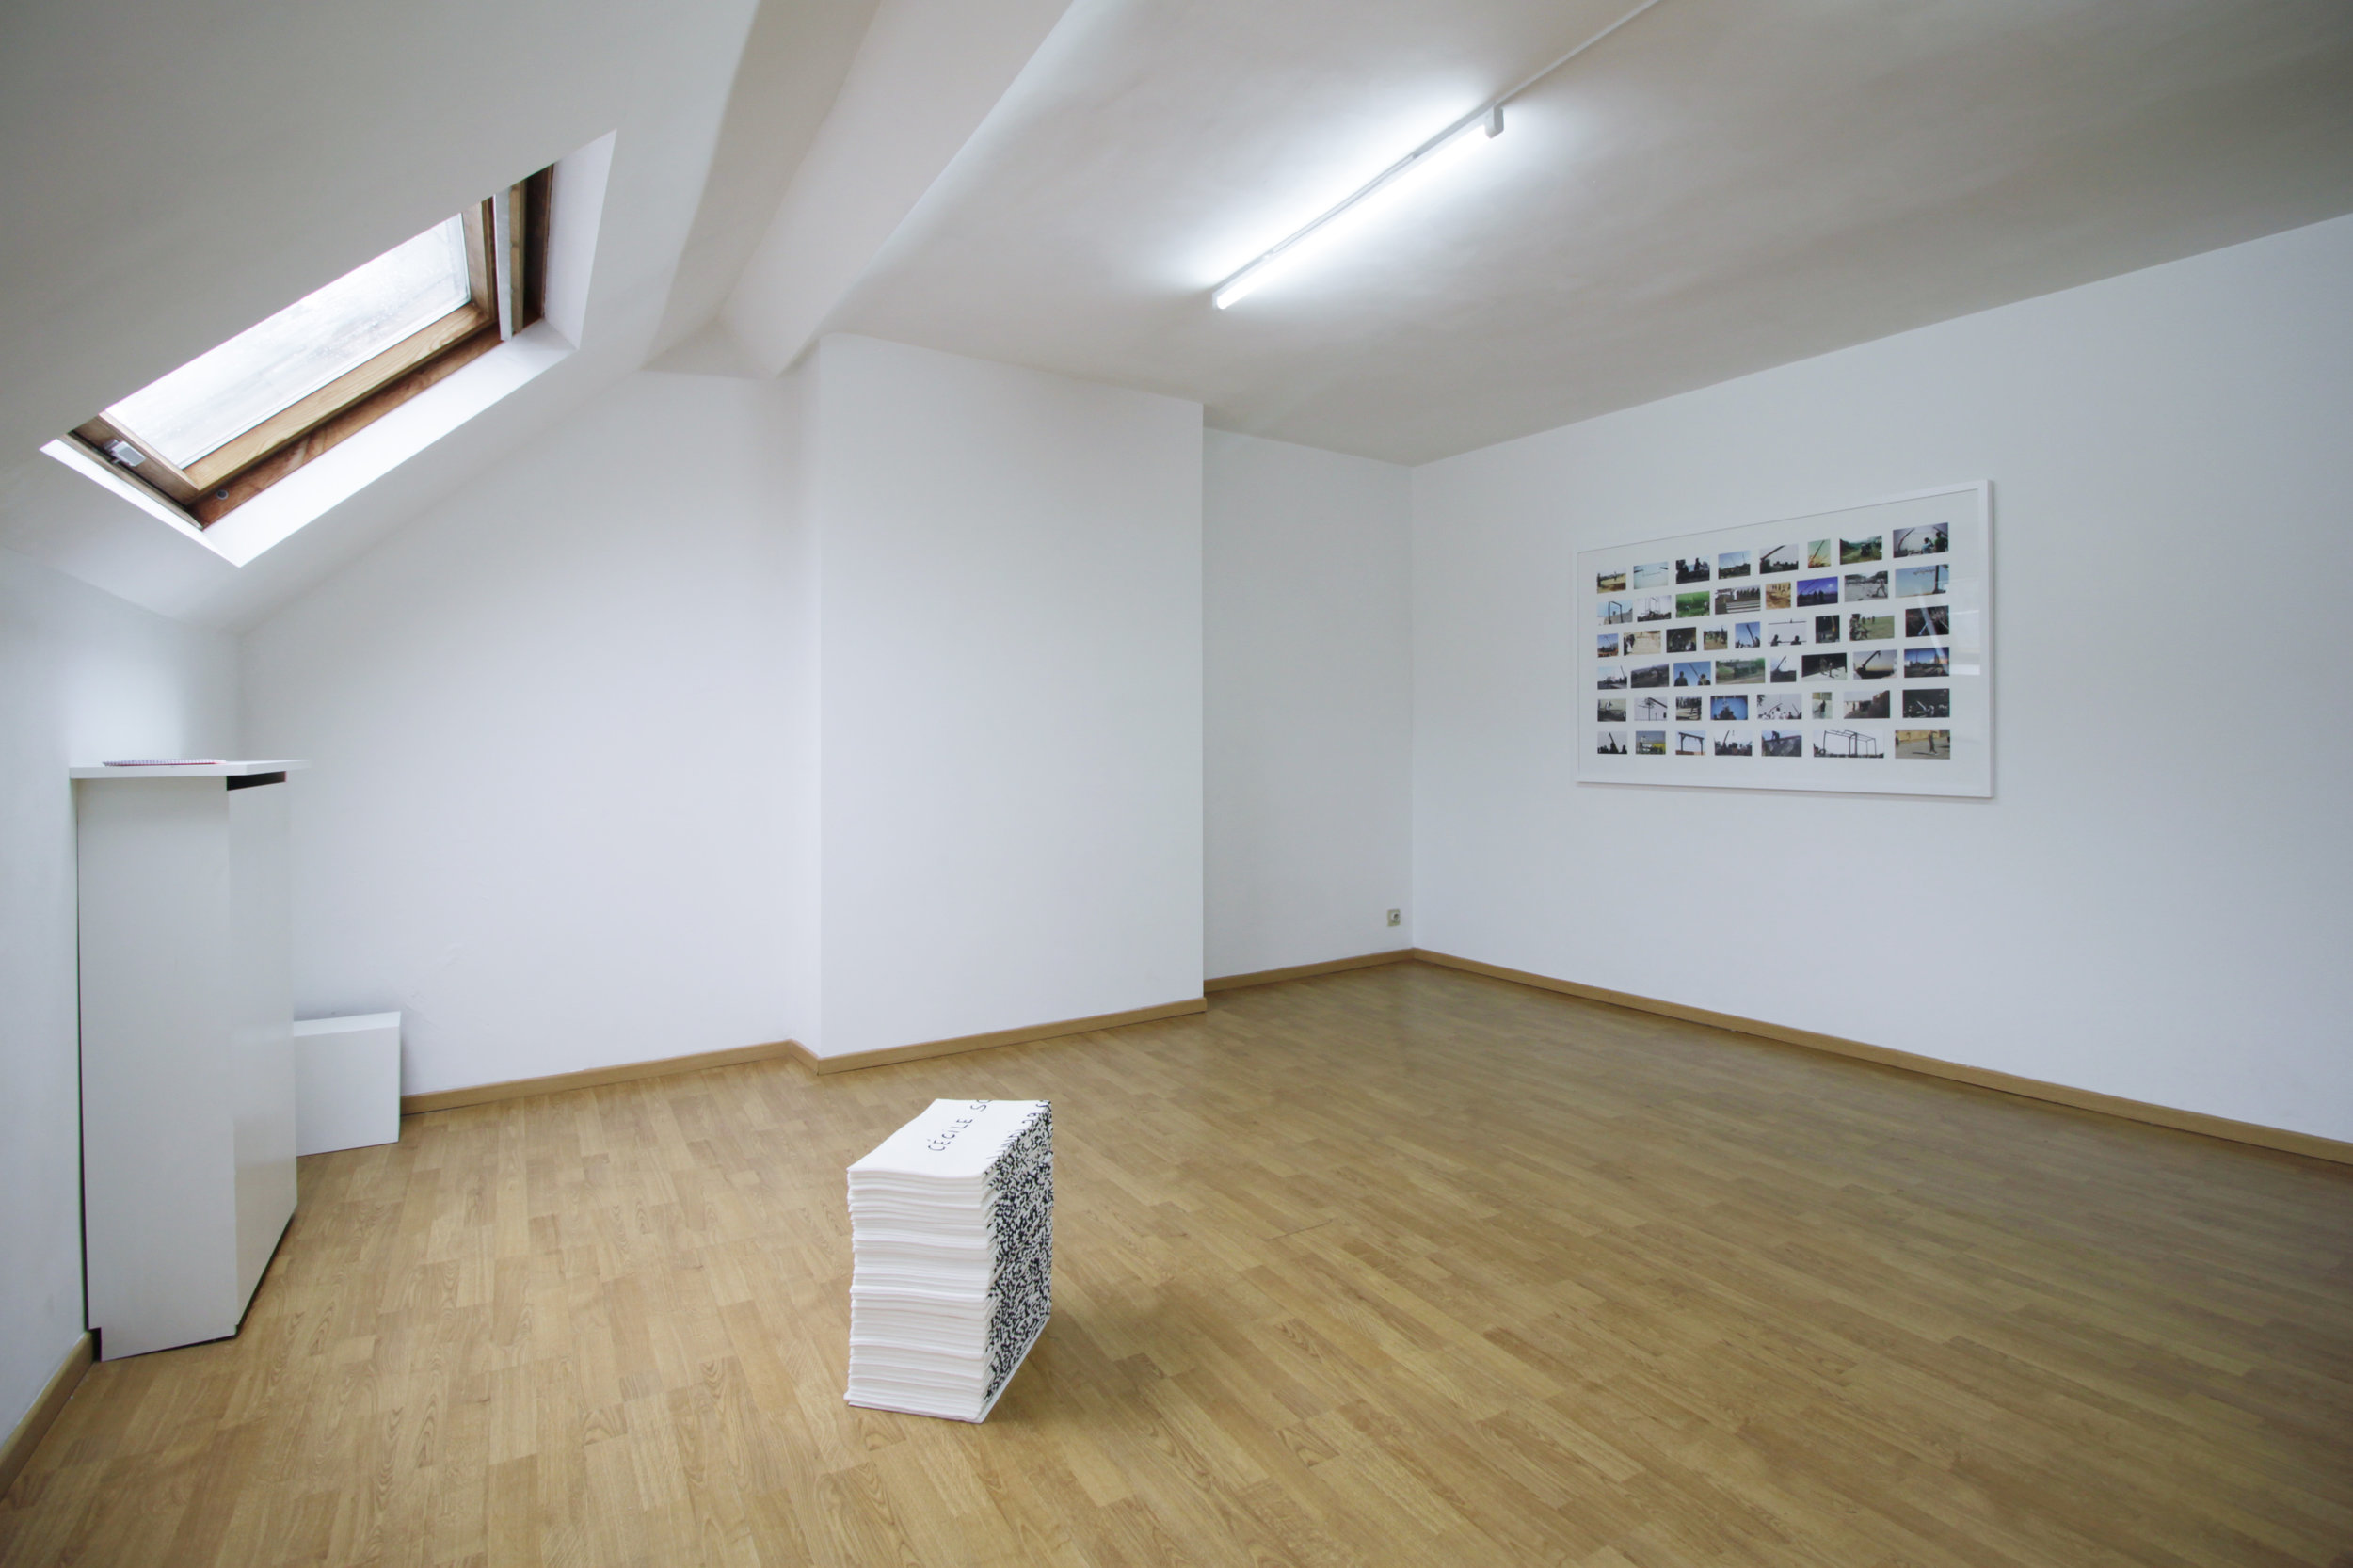 Léa Belooussovitch : public view   Solo show at  Platform 102   September 2015, Brussels, Belgium